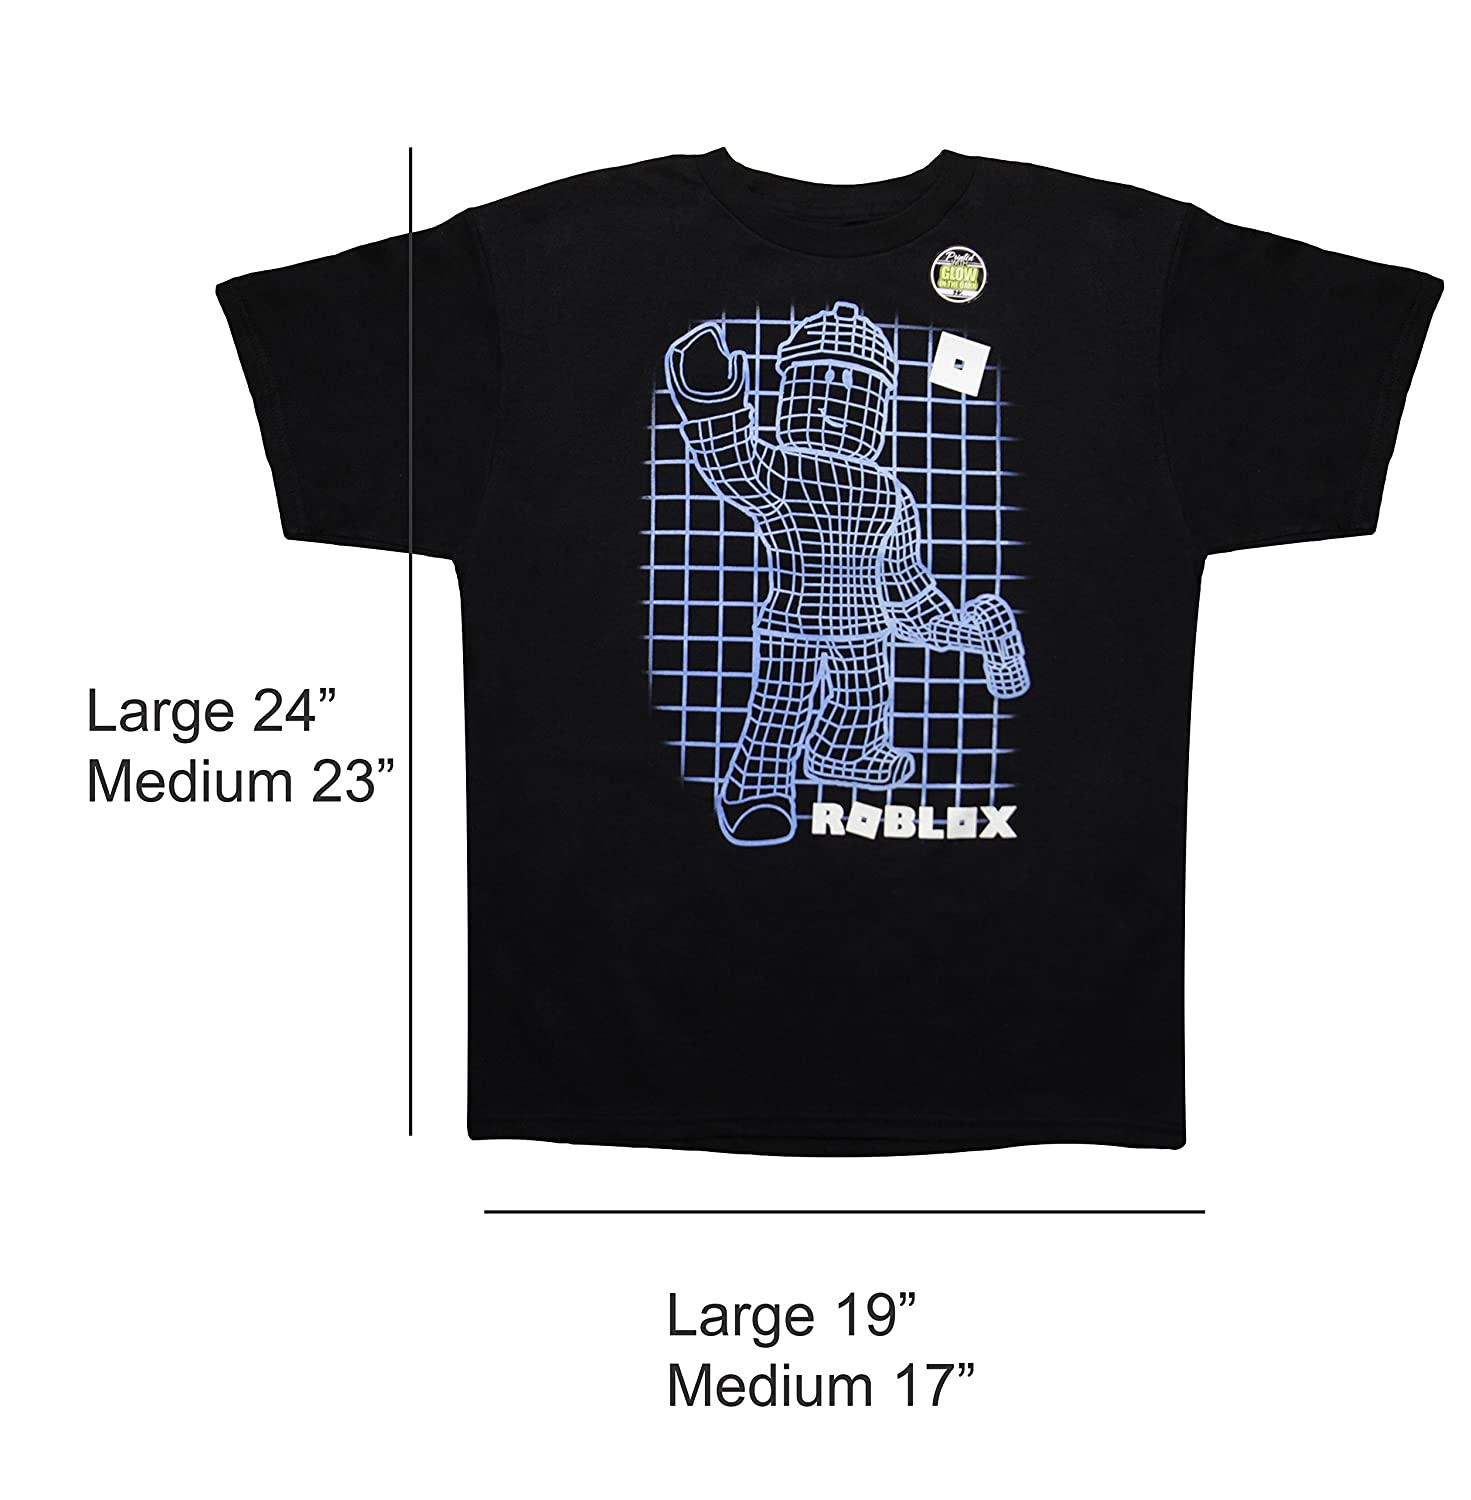 Roblox Game Play With Builderman Character Glow In The Dark For Young Kids Boys And Girls Black Tshirt Tee Medium - mickey plays roblox